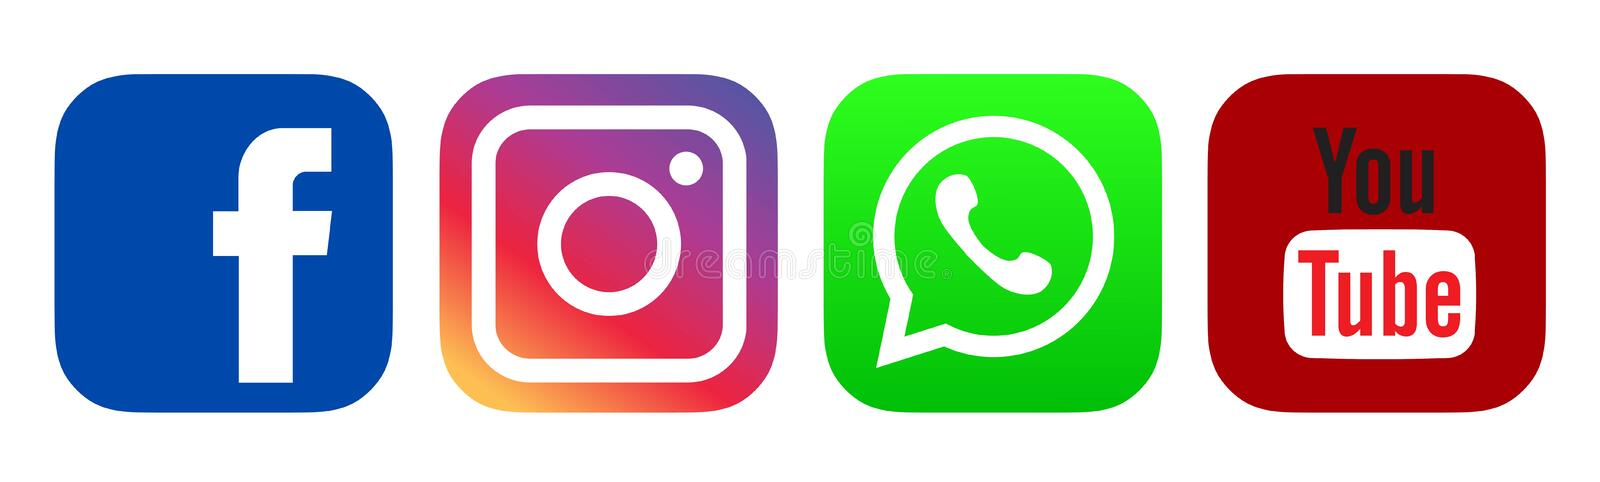 Colored Facebook, Instagram, whatsapp, Youtube logo icon. Srilanka,January.25.2020:Colored Facebook,Instagram,whatsapp,Youtube logo icon on white back ground royalty free illustration